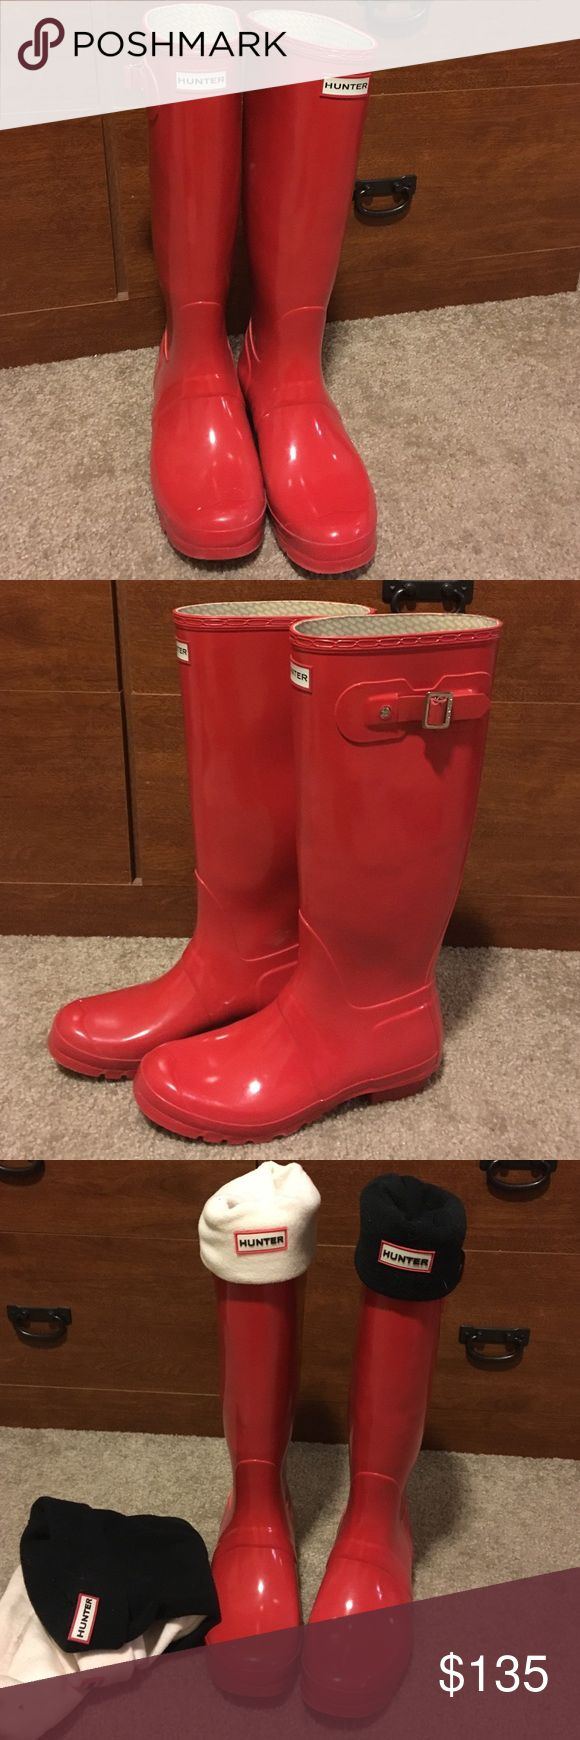 Tall glossy red hunter boots and boot socks! Size 10 tall glossy red hunter boots worn once or twice! They are in perfect condition. Selling with beige and black hunter boot socks size L (also barely worn). Moved to AZ.. Haven't found much need for these but they are amazing for rain and winter! Hunter Boots Shoes Winter & Rain Boots